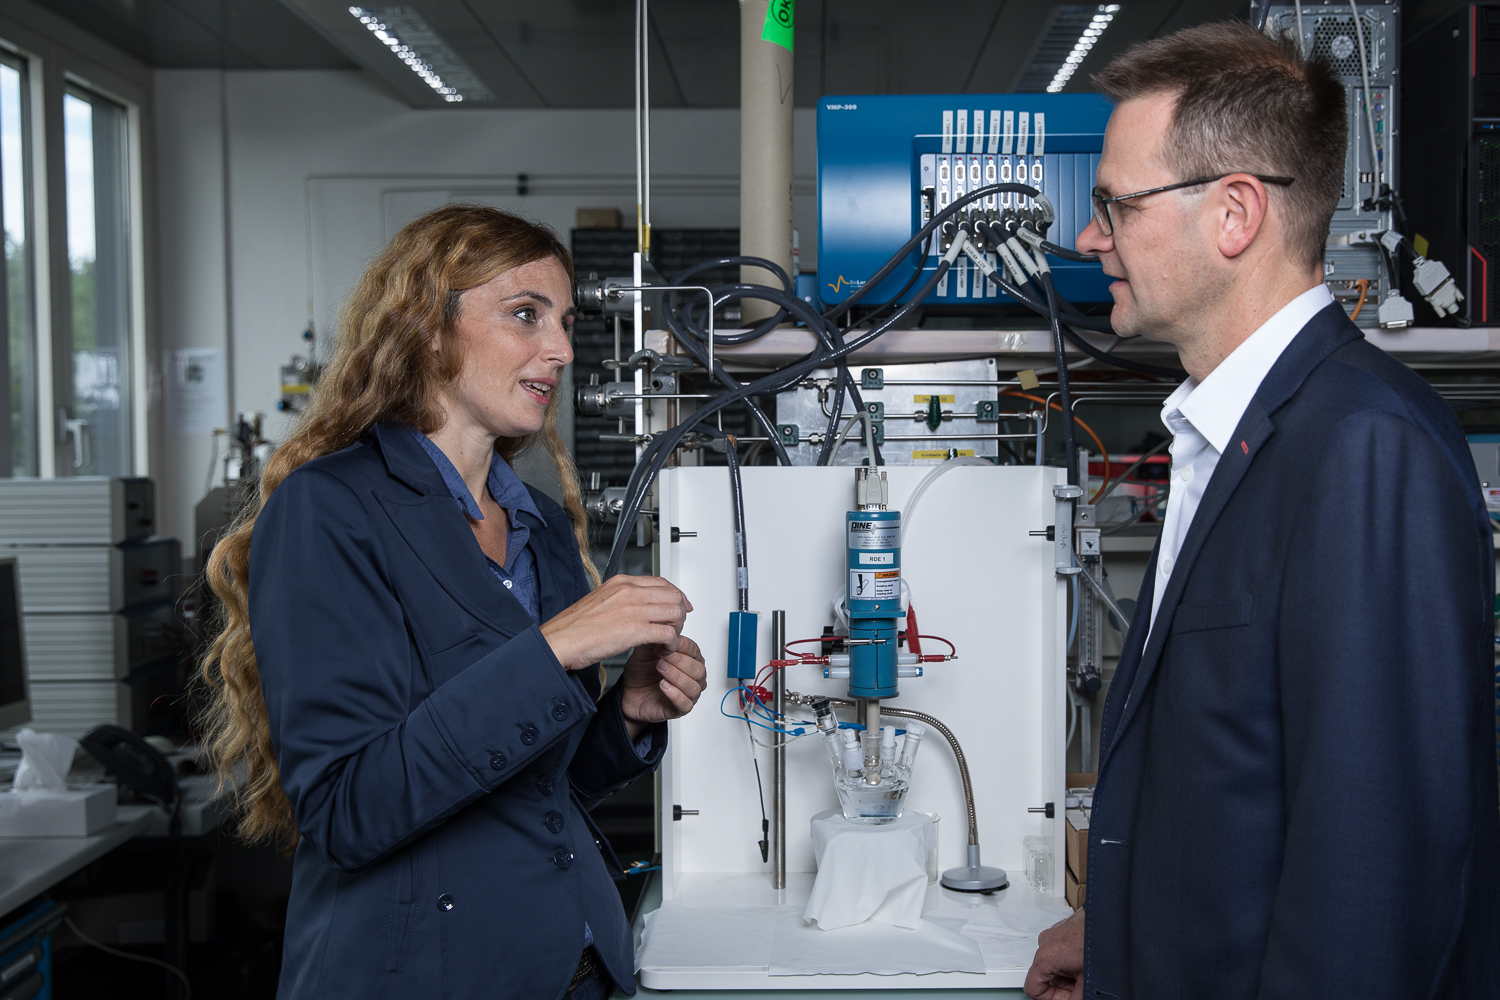 The scientists Emiliana Fabbri and Thomas Schmidt in a lab at PSI where they conducted experiments to study the performance of the newly developed catalyst for electrolysers. (Photo: Paul Scherrer Institute/Mahir Dzambegovic)